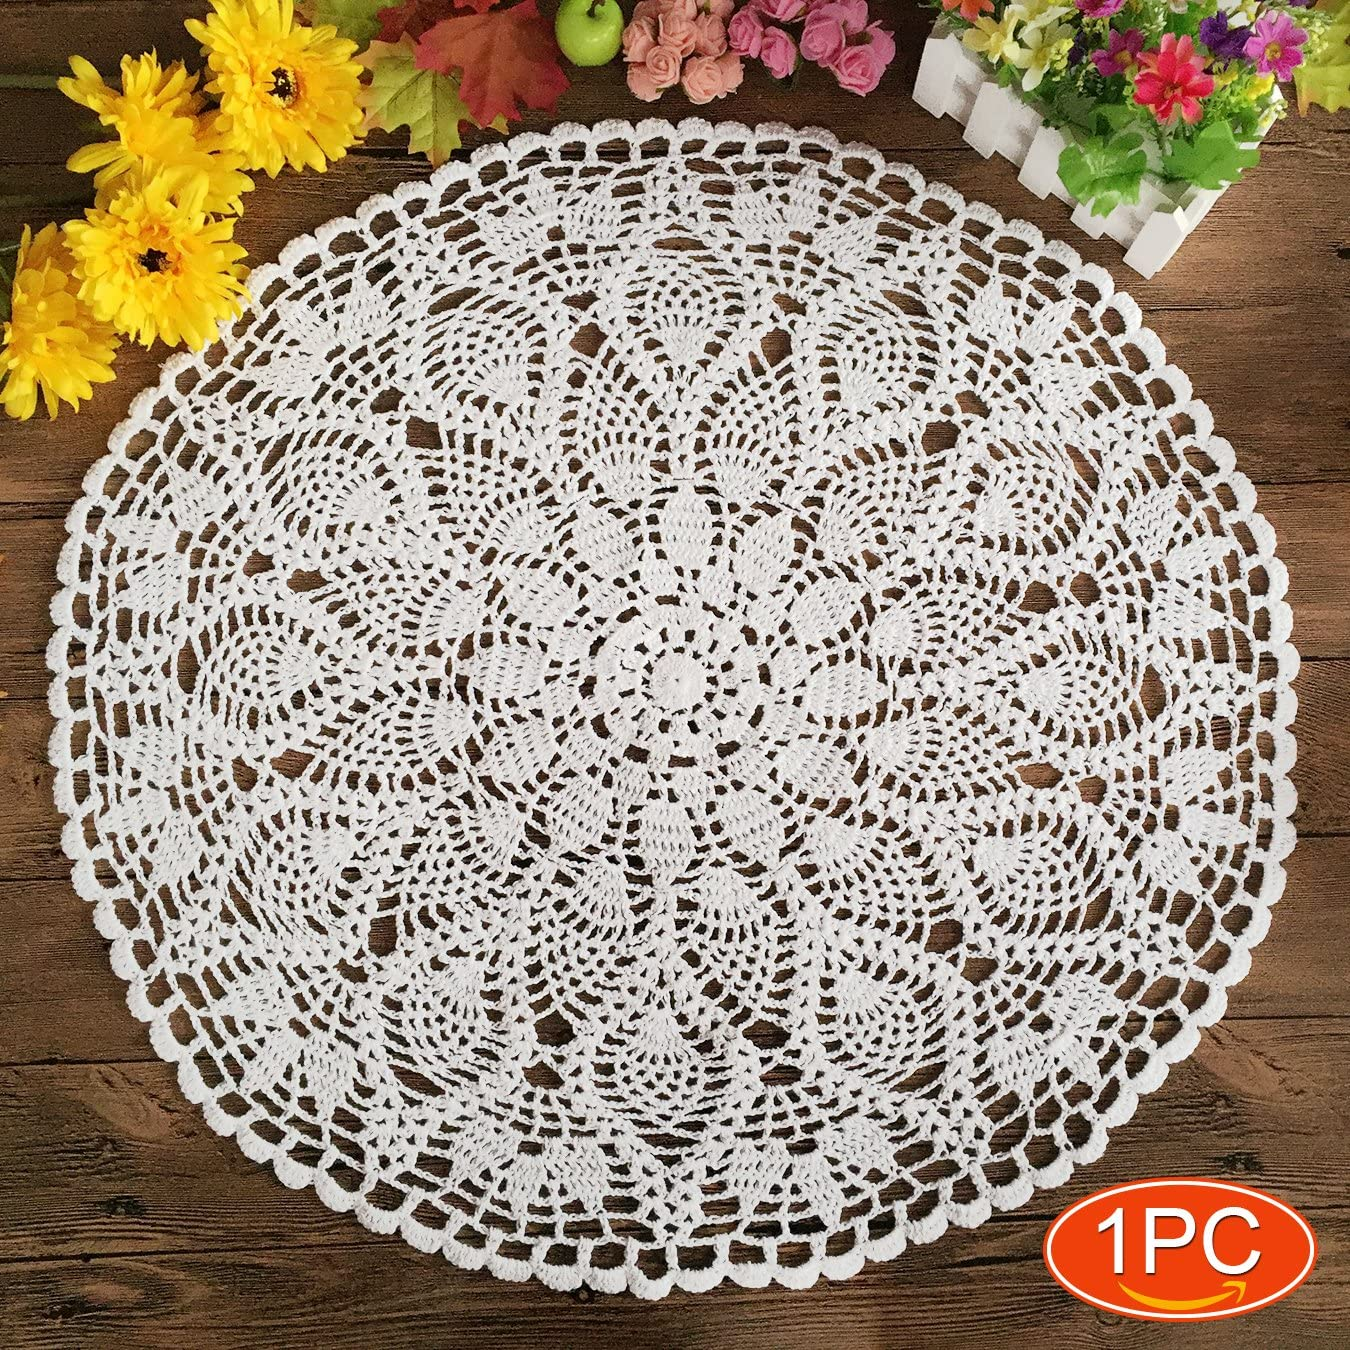 Elesa Miracle 22 Inch 1pc Handmade Crochet Cotton Lace Table Placemats Sofa Doilies Value Pack, Waterlily, Beige/White (1pc-22 Inch White)